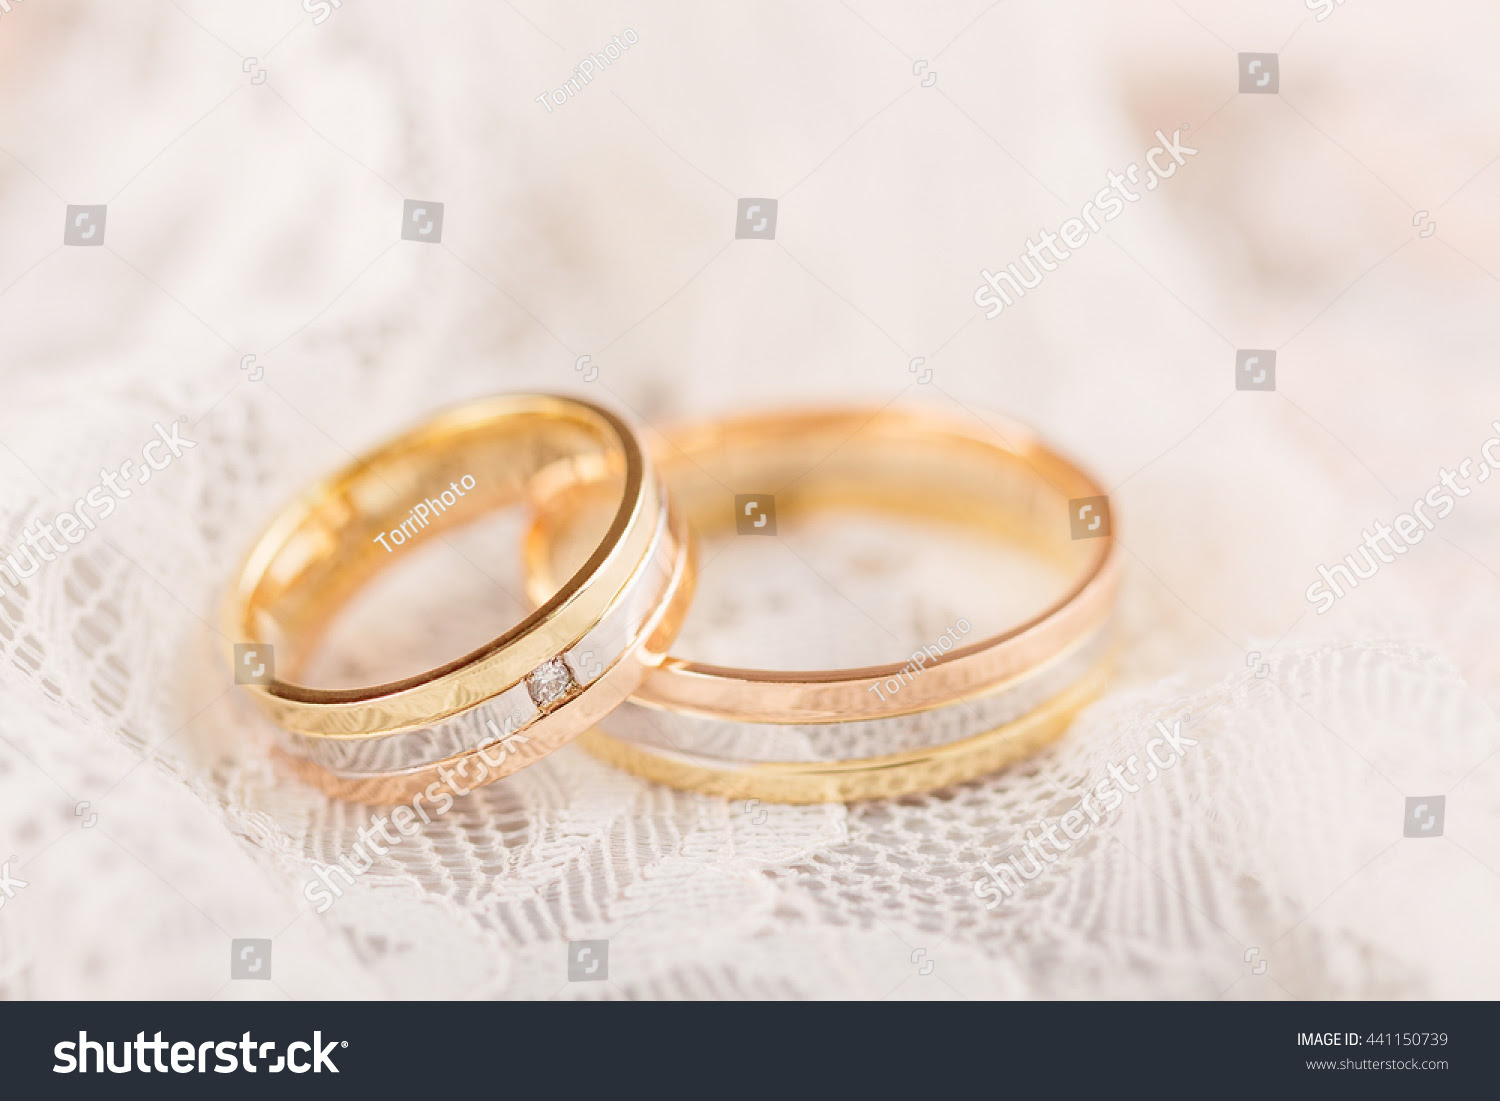 anniversary, background, bridal, bride, celebration, ceremony, concept, couple, design, diamond, drapery, elegance, elegant, engagement, fabric, fashion, focus, gem, gold, golden, husband, invitation, jewelry, lace, love, luxury, macro, marriage, marry, material, nobody, pair, pastel, pink, rings, romance, romantic, satin, shallow, shiny, silk, soft, symbol, textile, two, valentine, wedding, white, wife, yellow